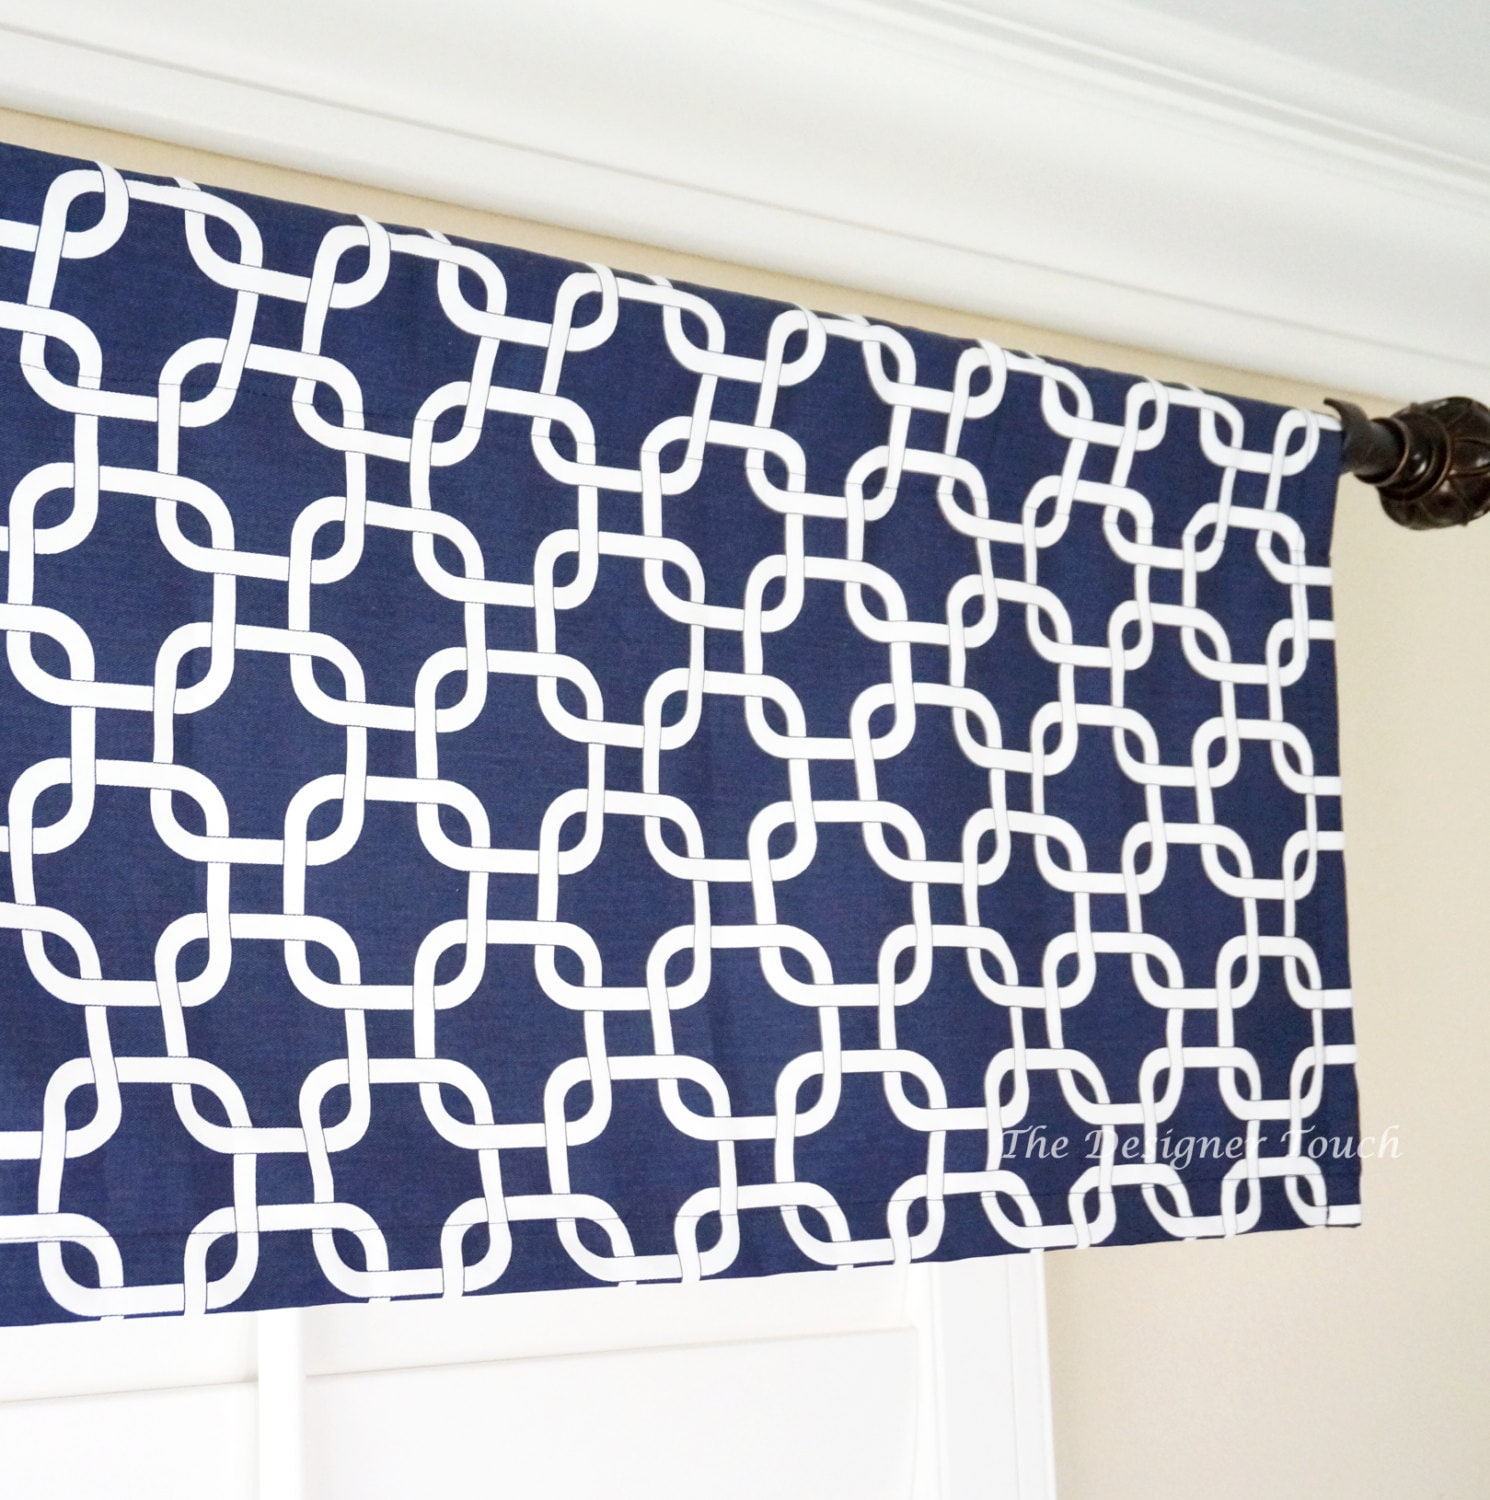 zoom green listing valance il bedroom fullxfull gras no window mardi gray en paisley yellow covington cpgs whimsy blue kitchen